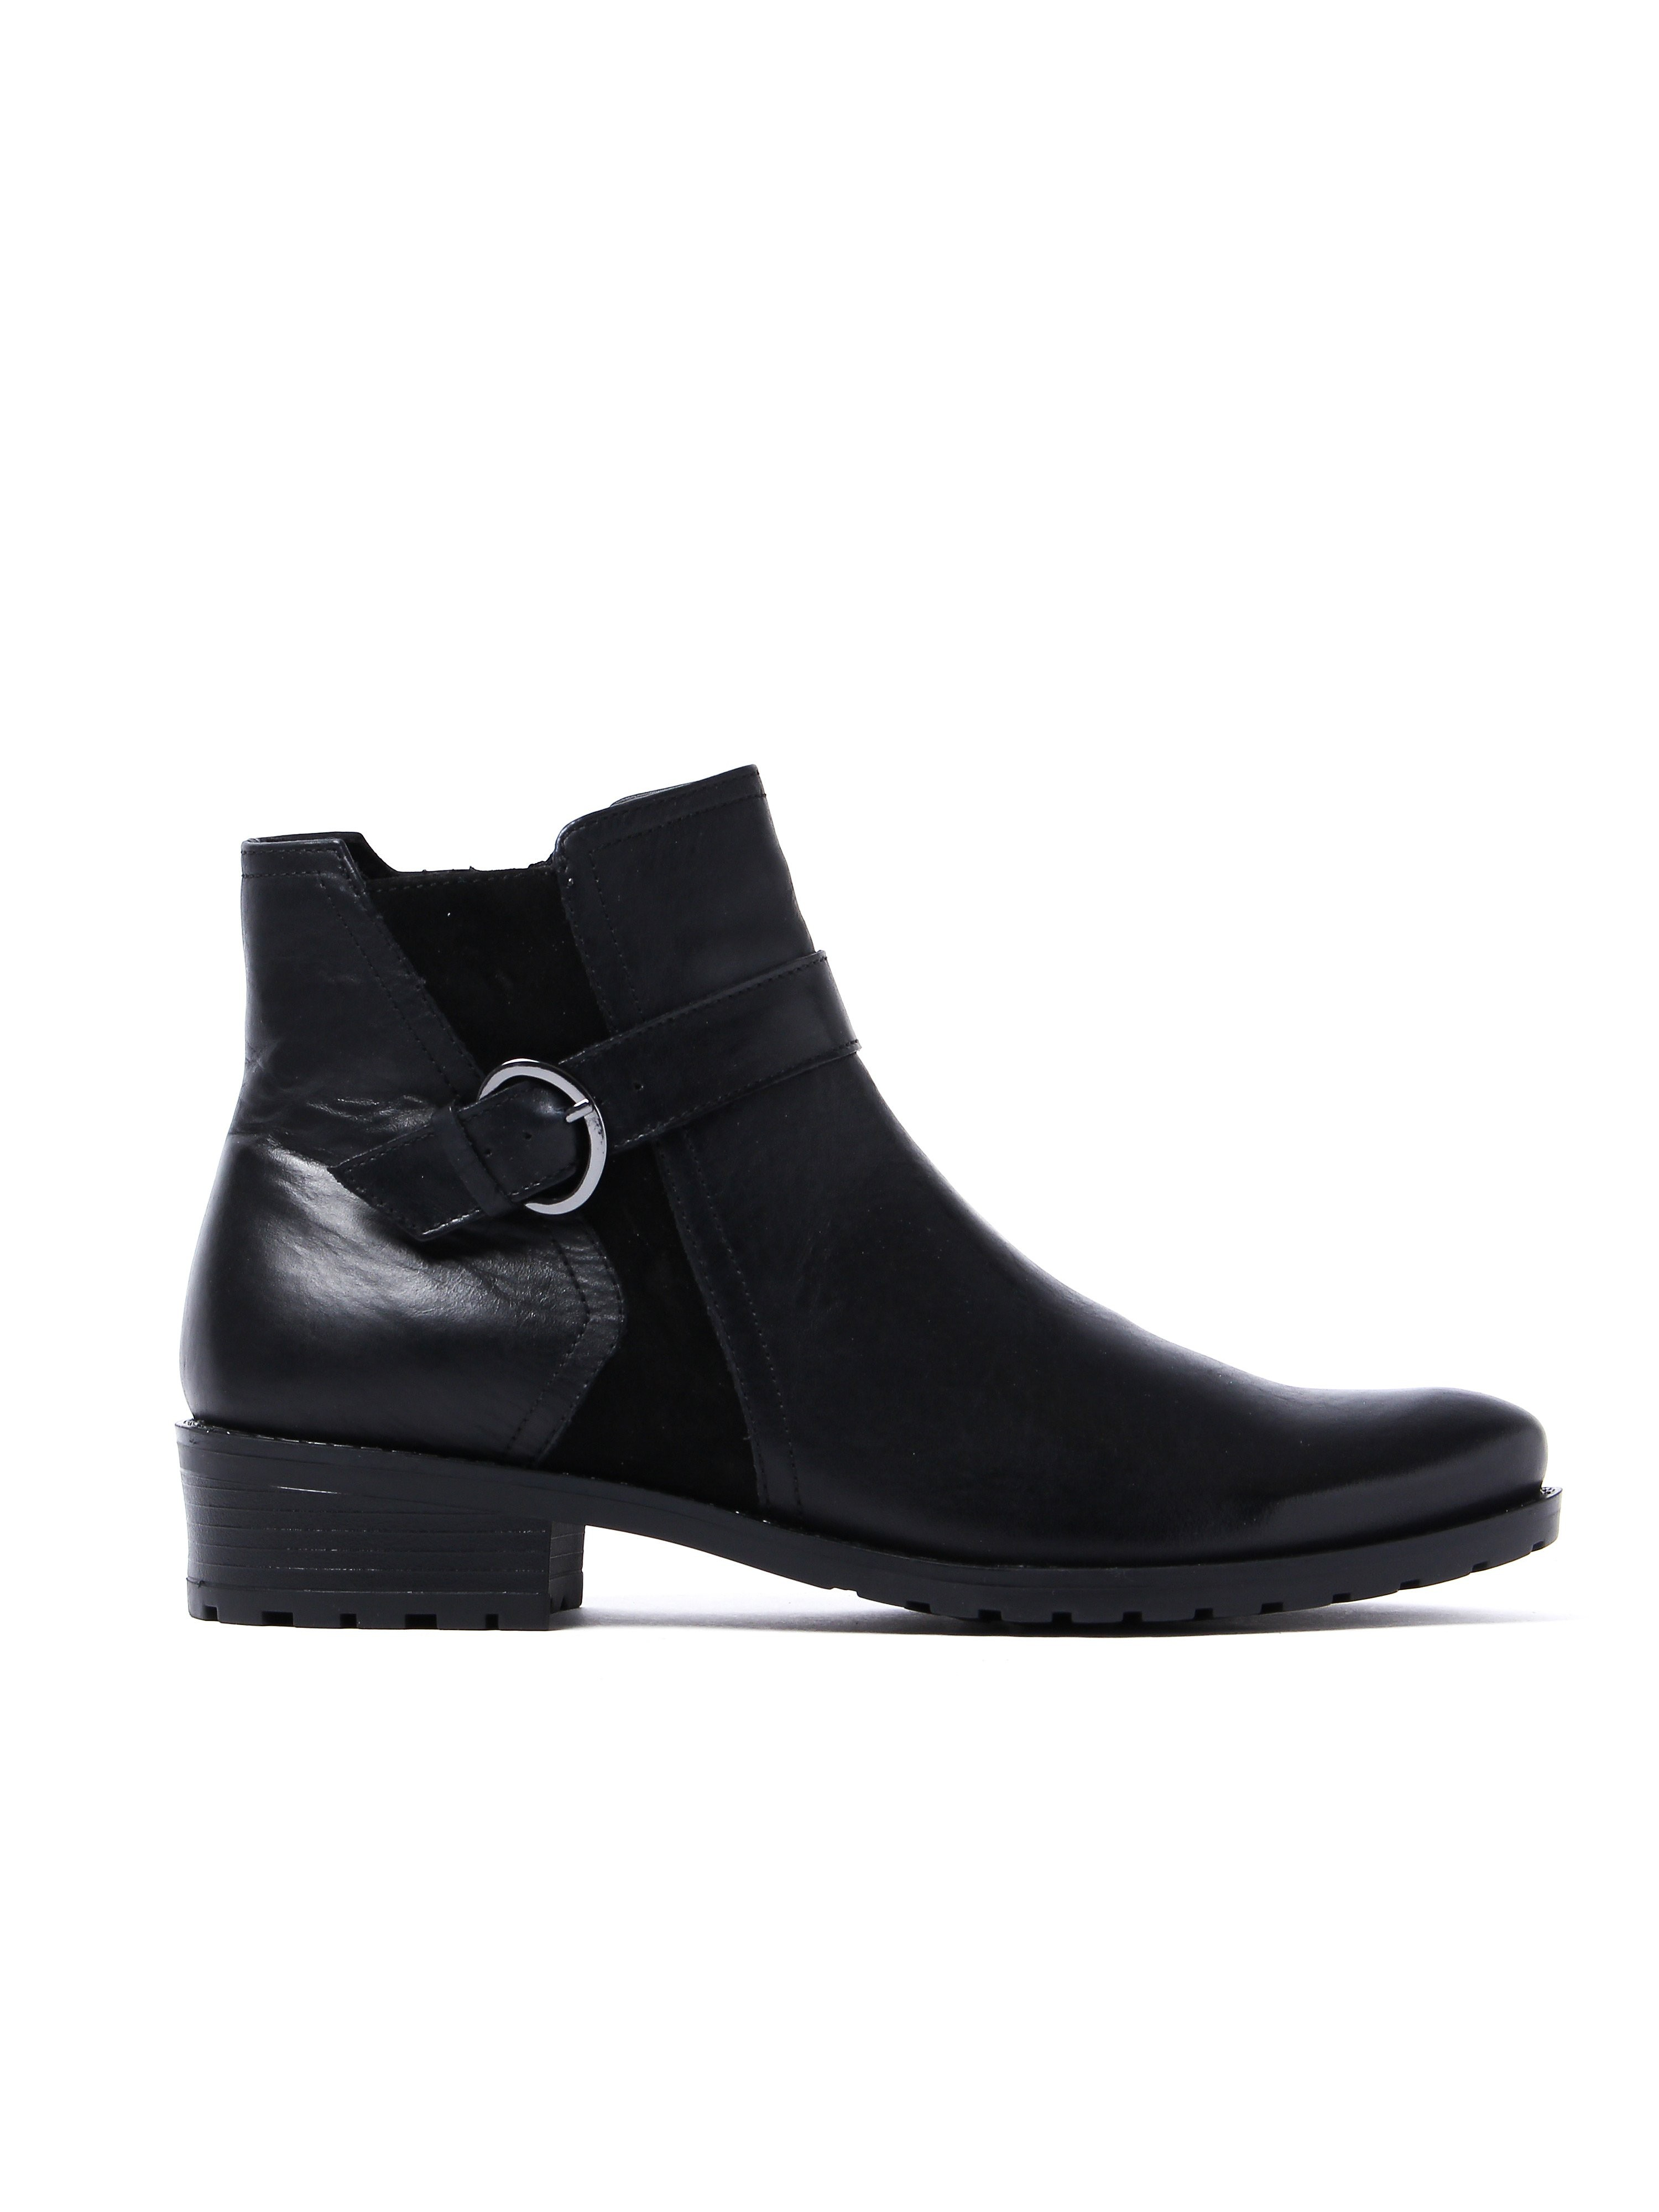 Caprice Women's Antic Ankle Boots - Black Leather